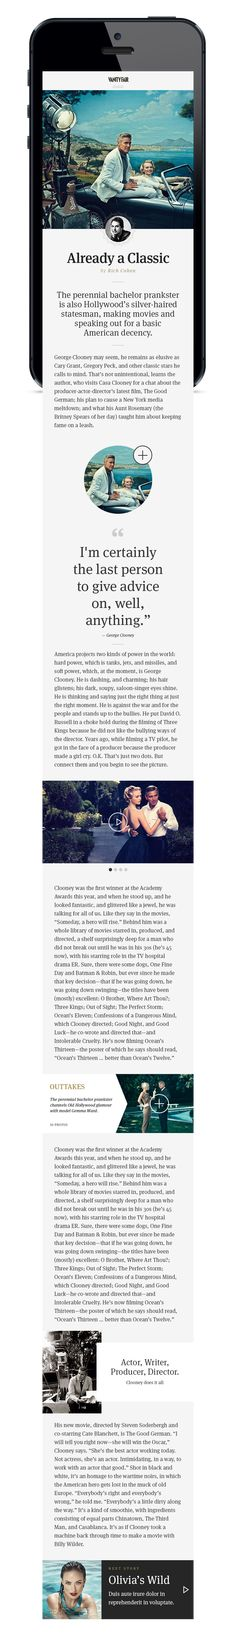 "Vanity Fair *** ""I love Vanity Fair. They employ some of the worlds finest talent. Their content is fantastic. Their mobile site however... quite shit actually. I wanted to just have some fun with it and give it a facelift."" by Brijan, via Dribbble *** #web #mobile #design #dribbble"